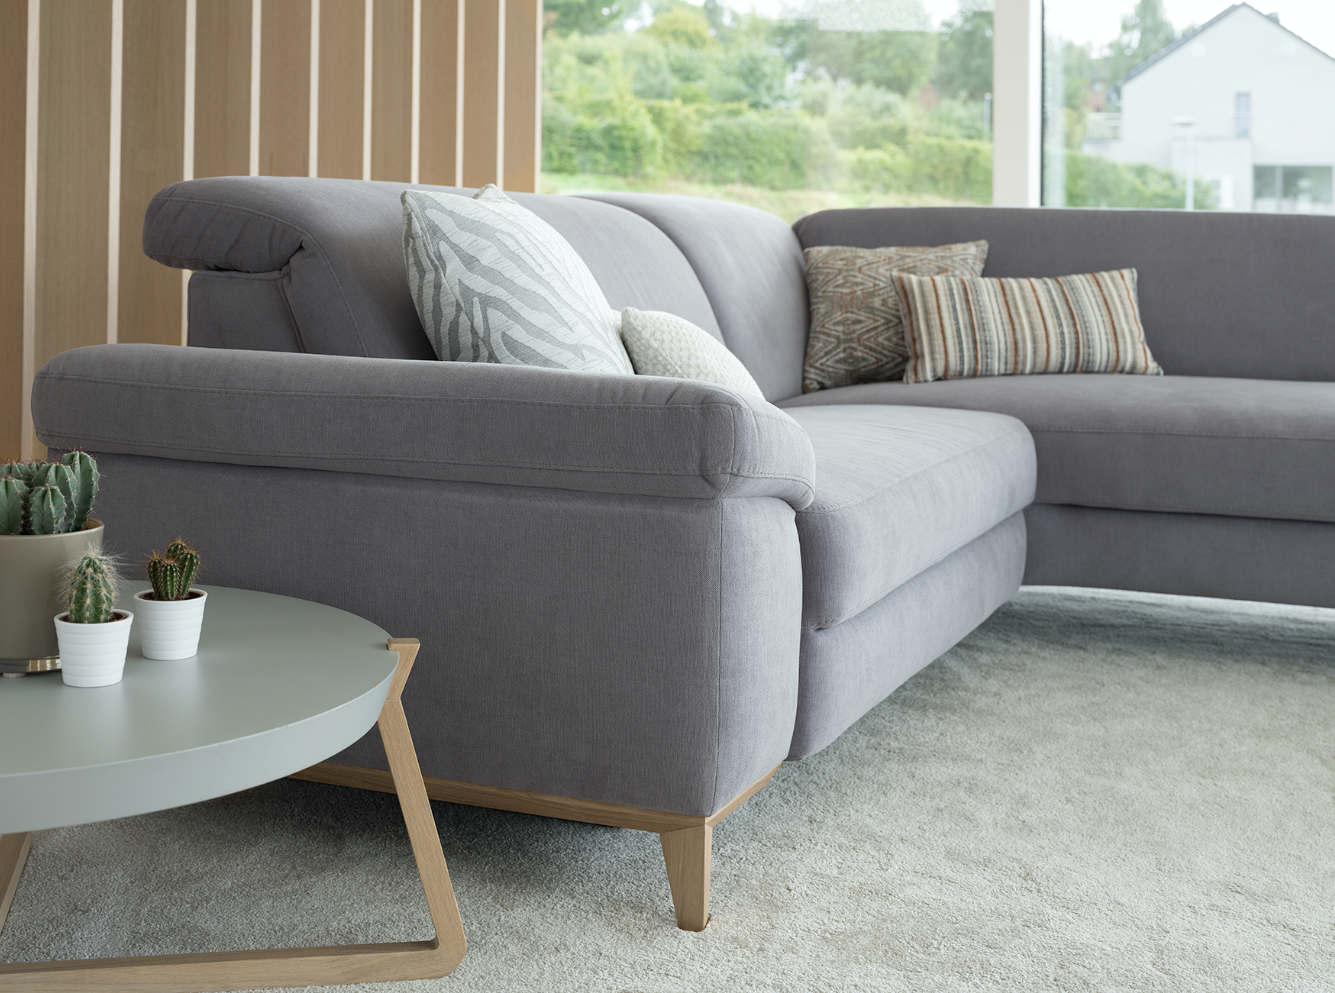 Customise The Legs Of Your Sofa.